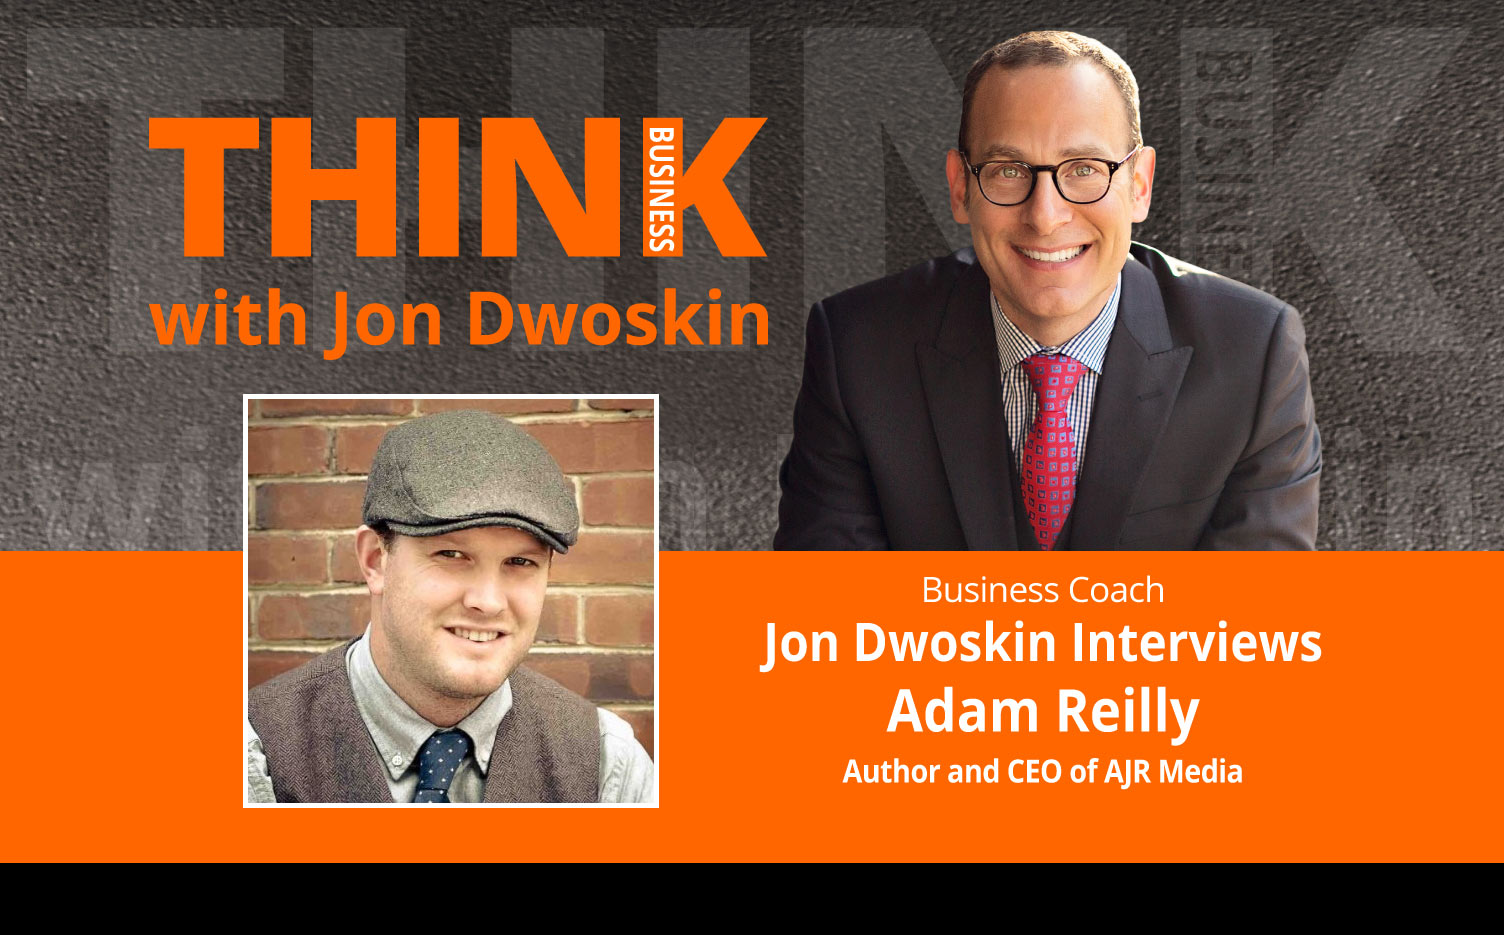 THINK Business Podcast: Jon Dwoskin Interviews Adam Reilly, Author and CEO of AJR Media